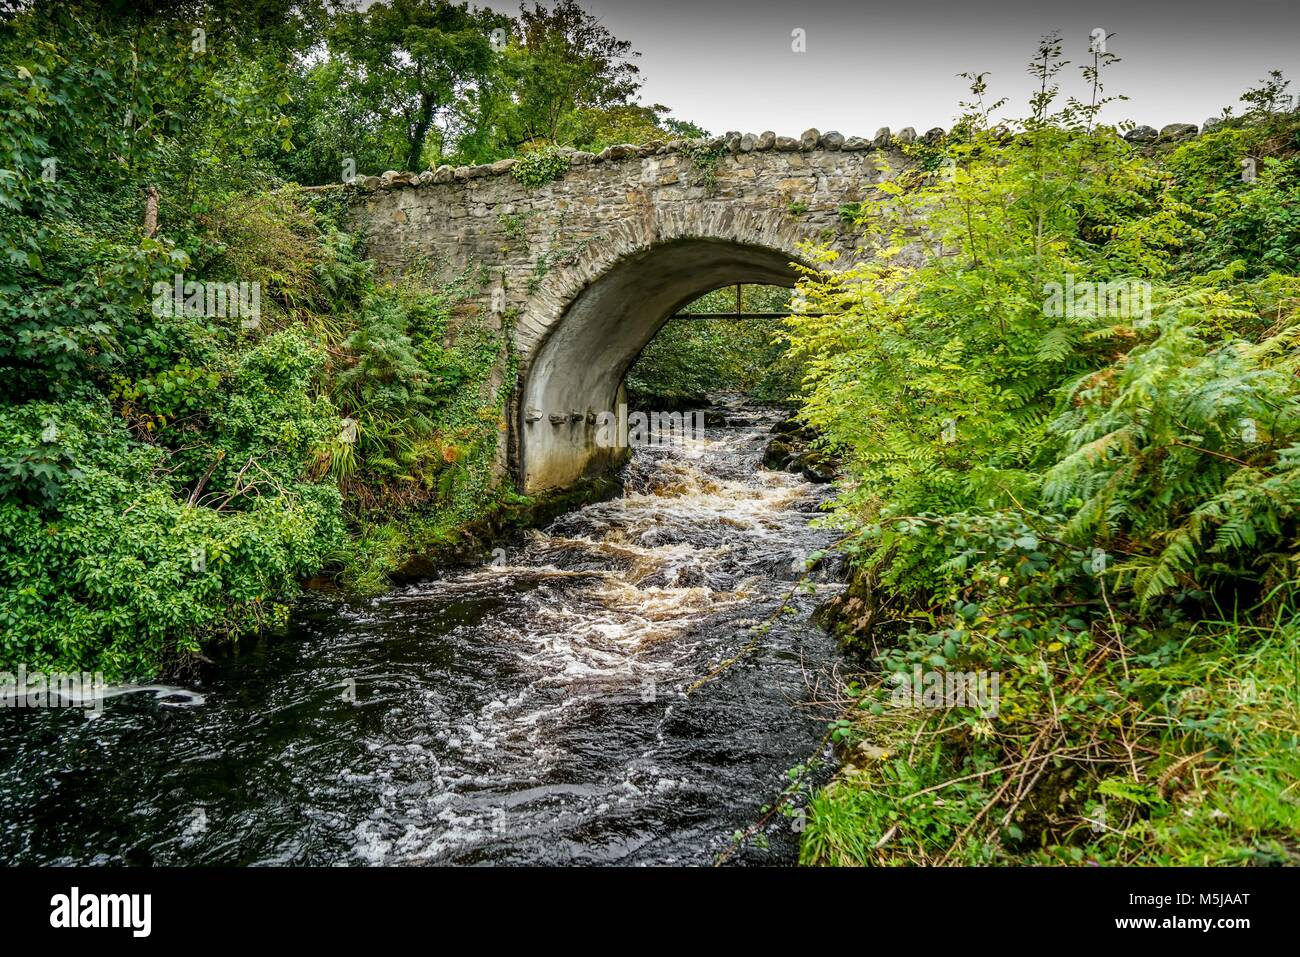 An old single-lane bridge over a river near Carrick in County Donegal Ireland. - Stock Image